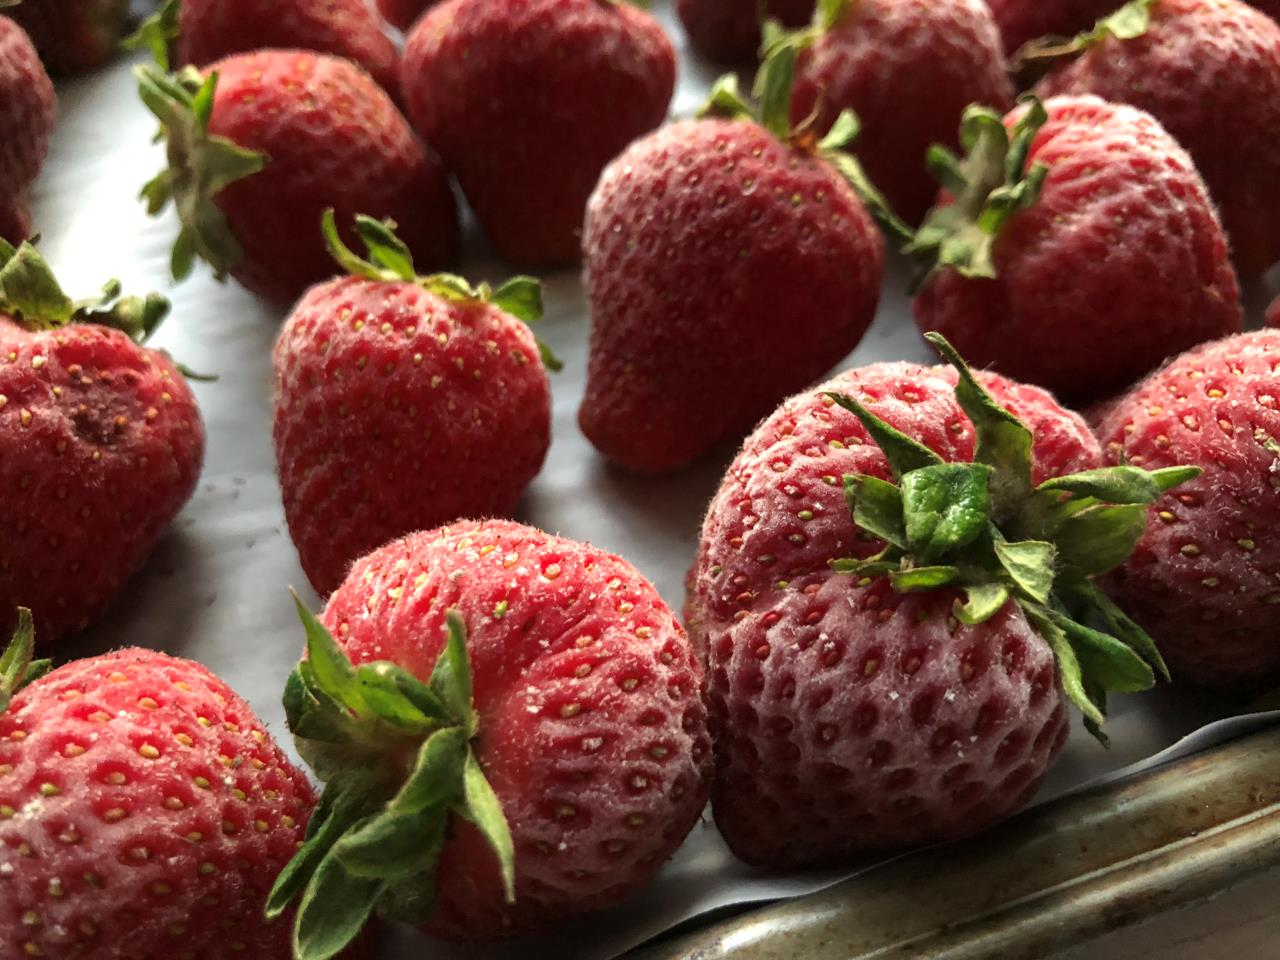 Frozen Strawberries - Preserving - New Jersey Farm